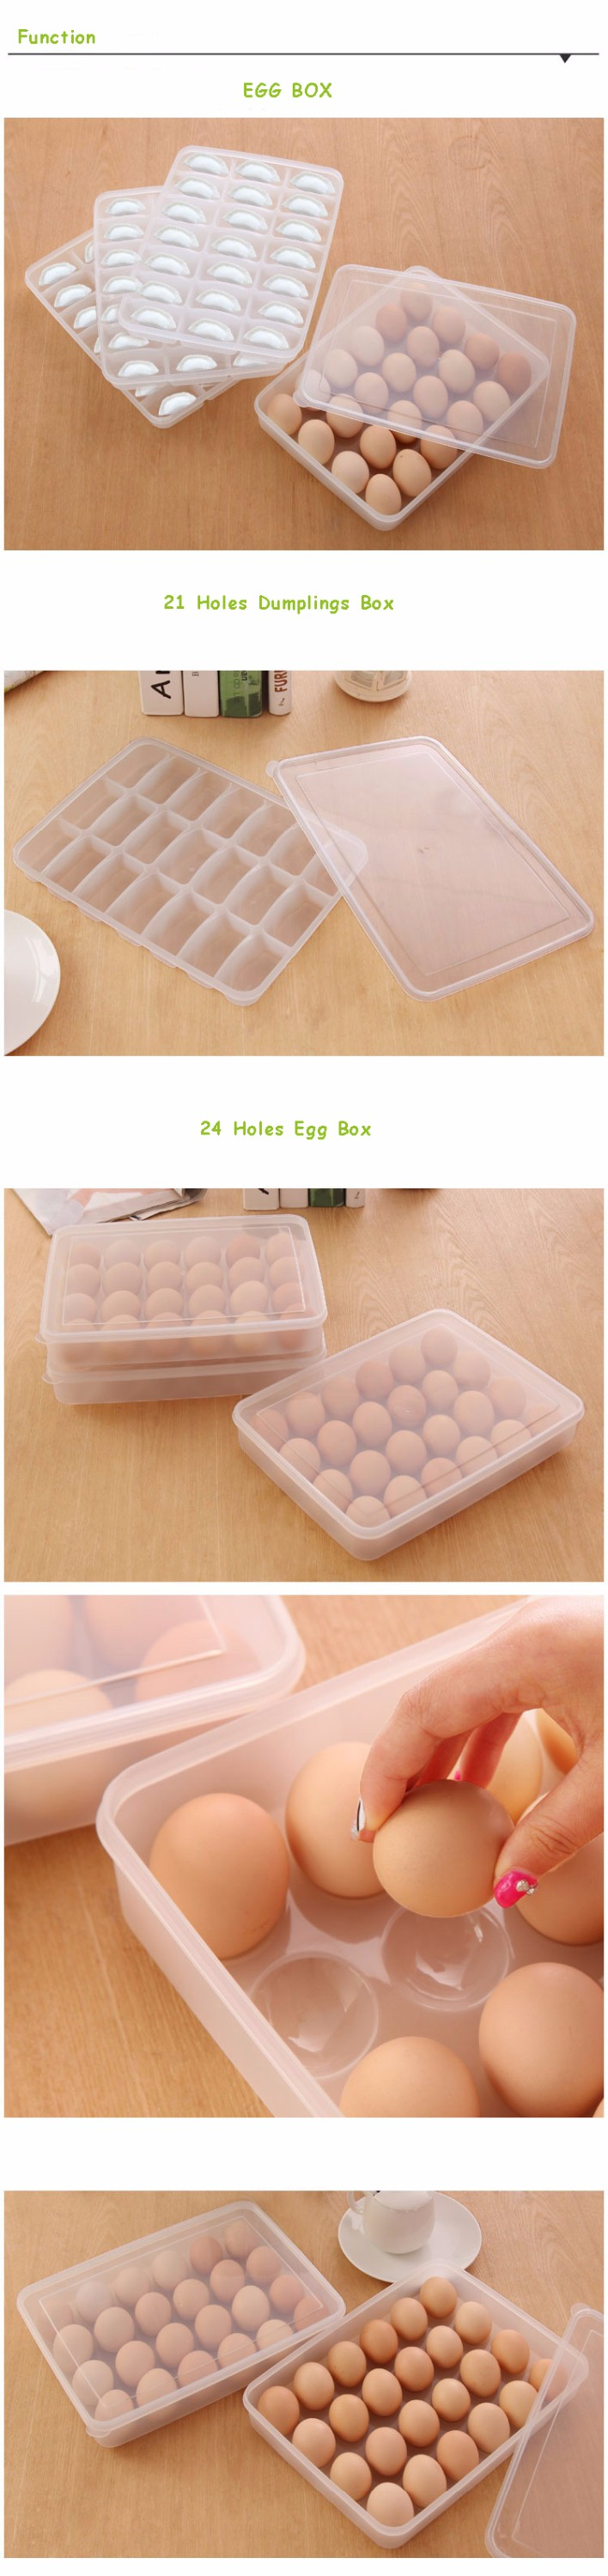 Disposable Plastic Egg Container, Food Storage Container set